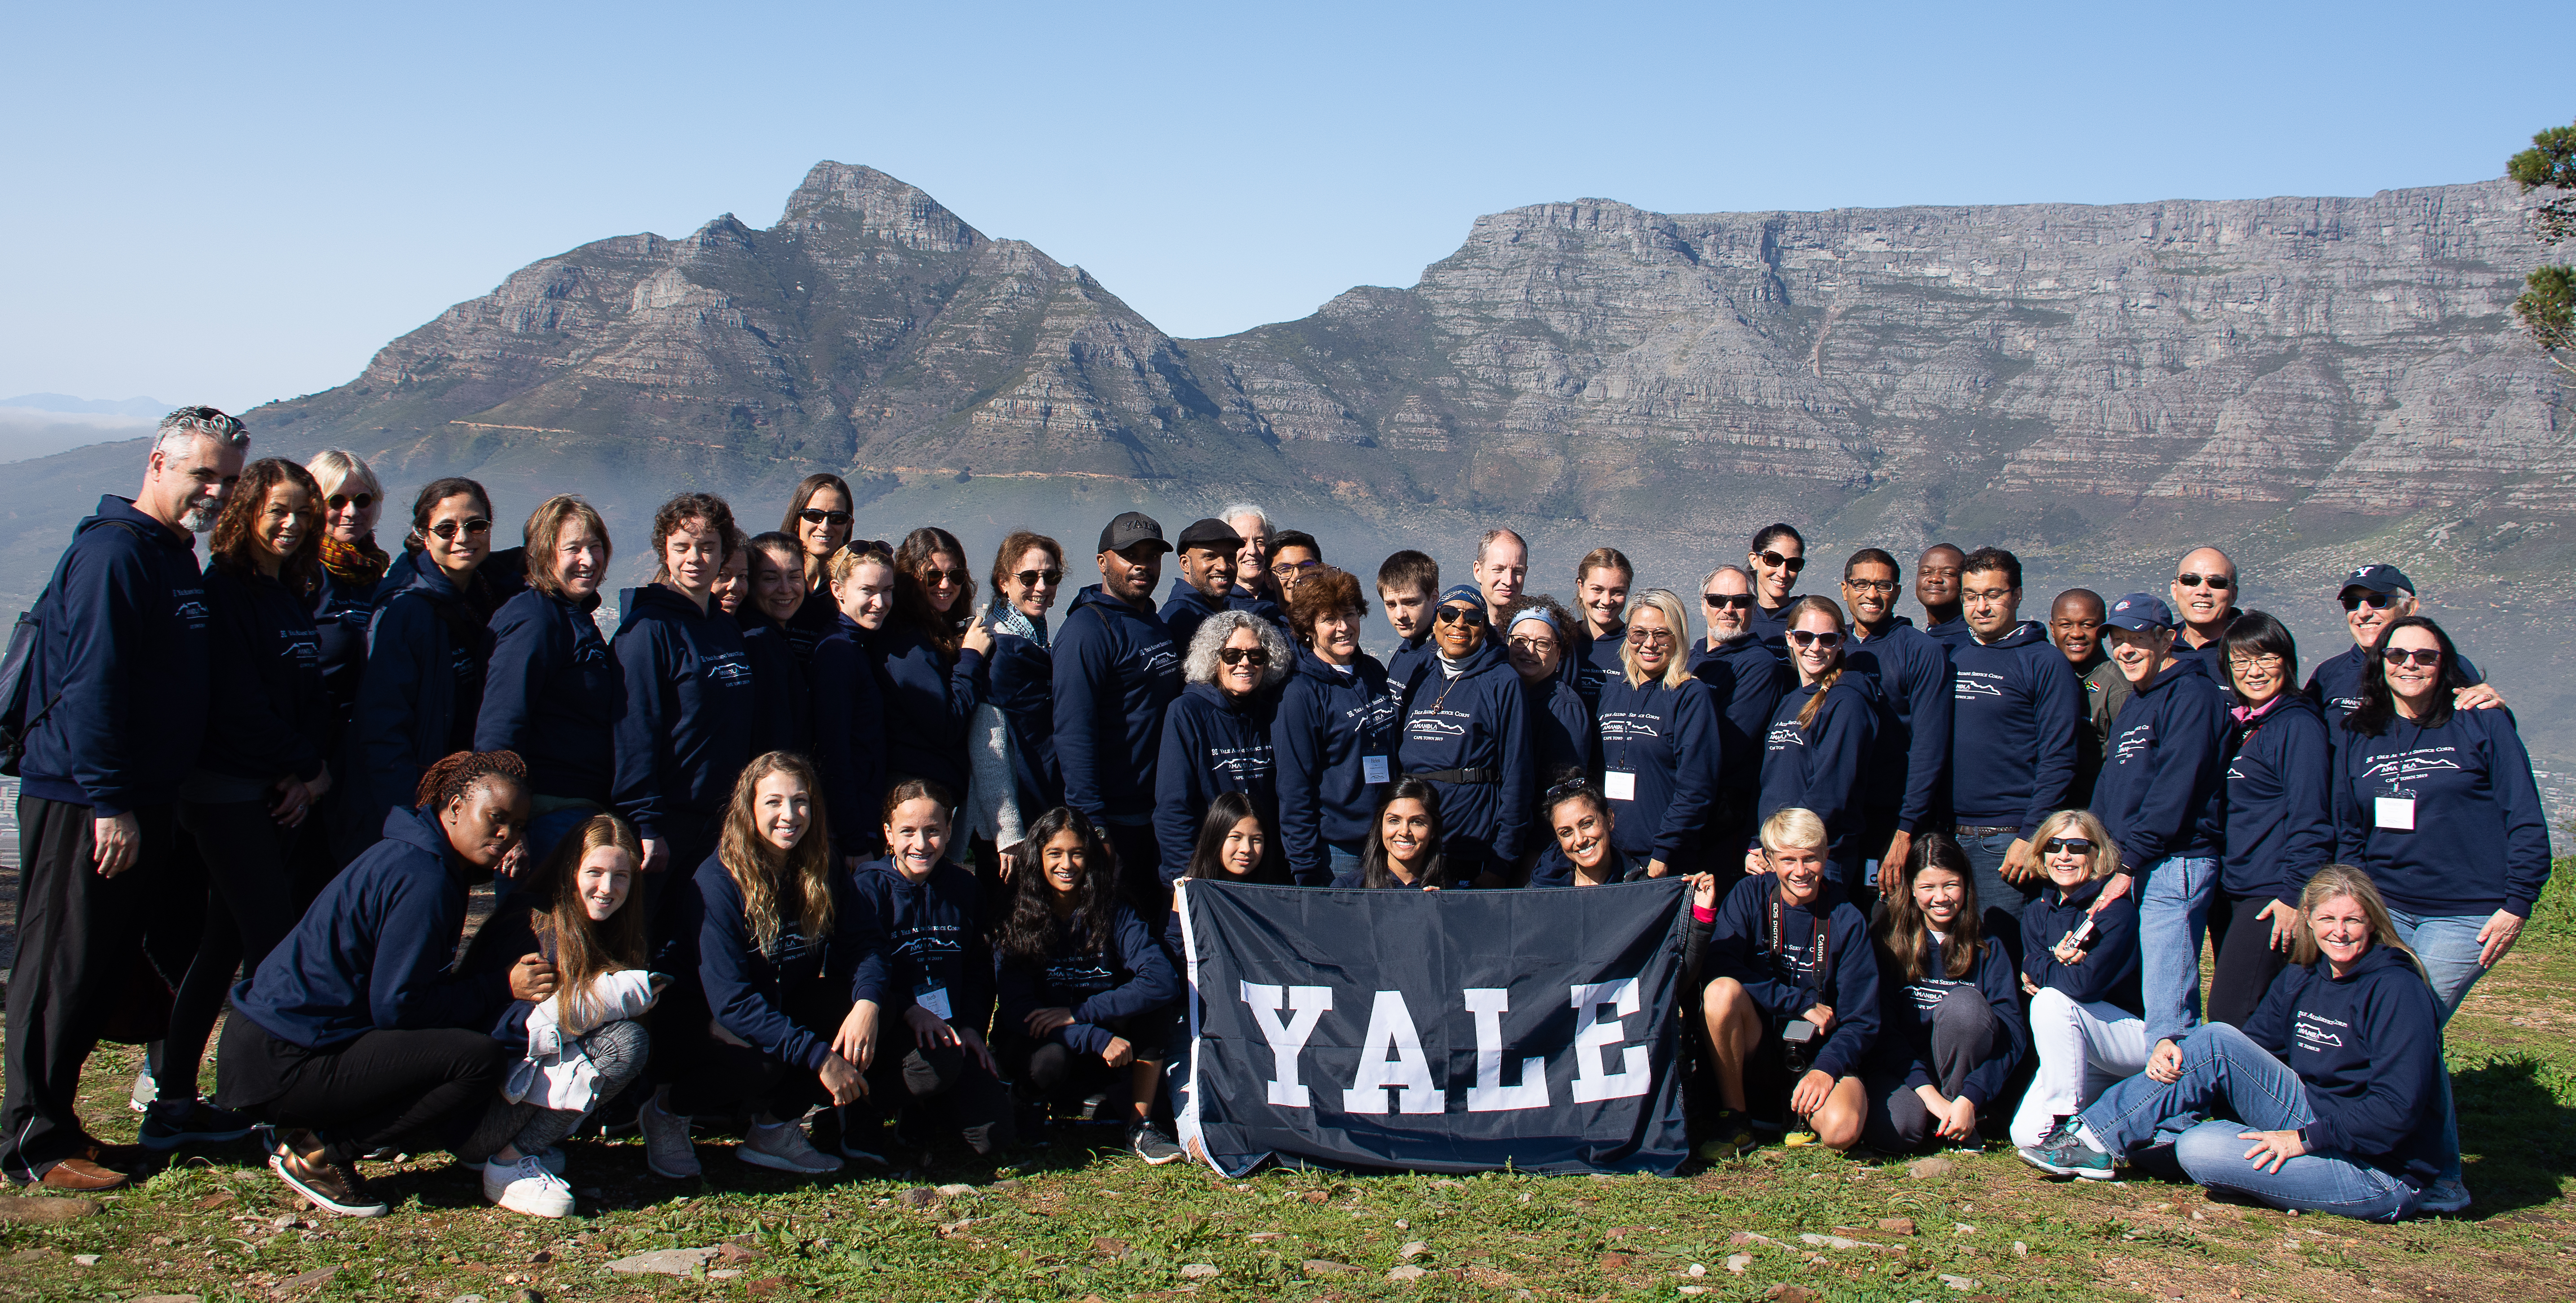 Yale Alumni Service Corps volunteers gather in Cape Town.